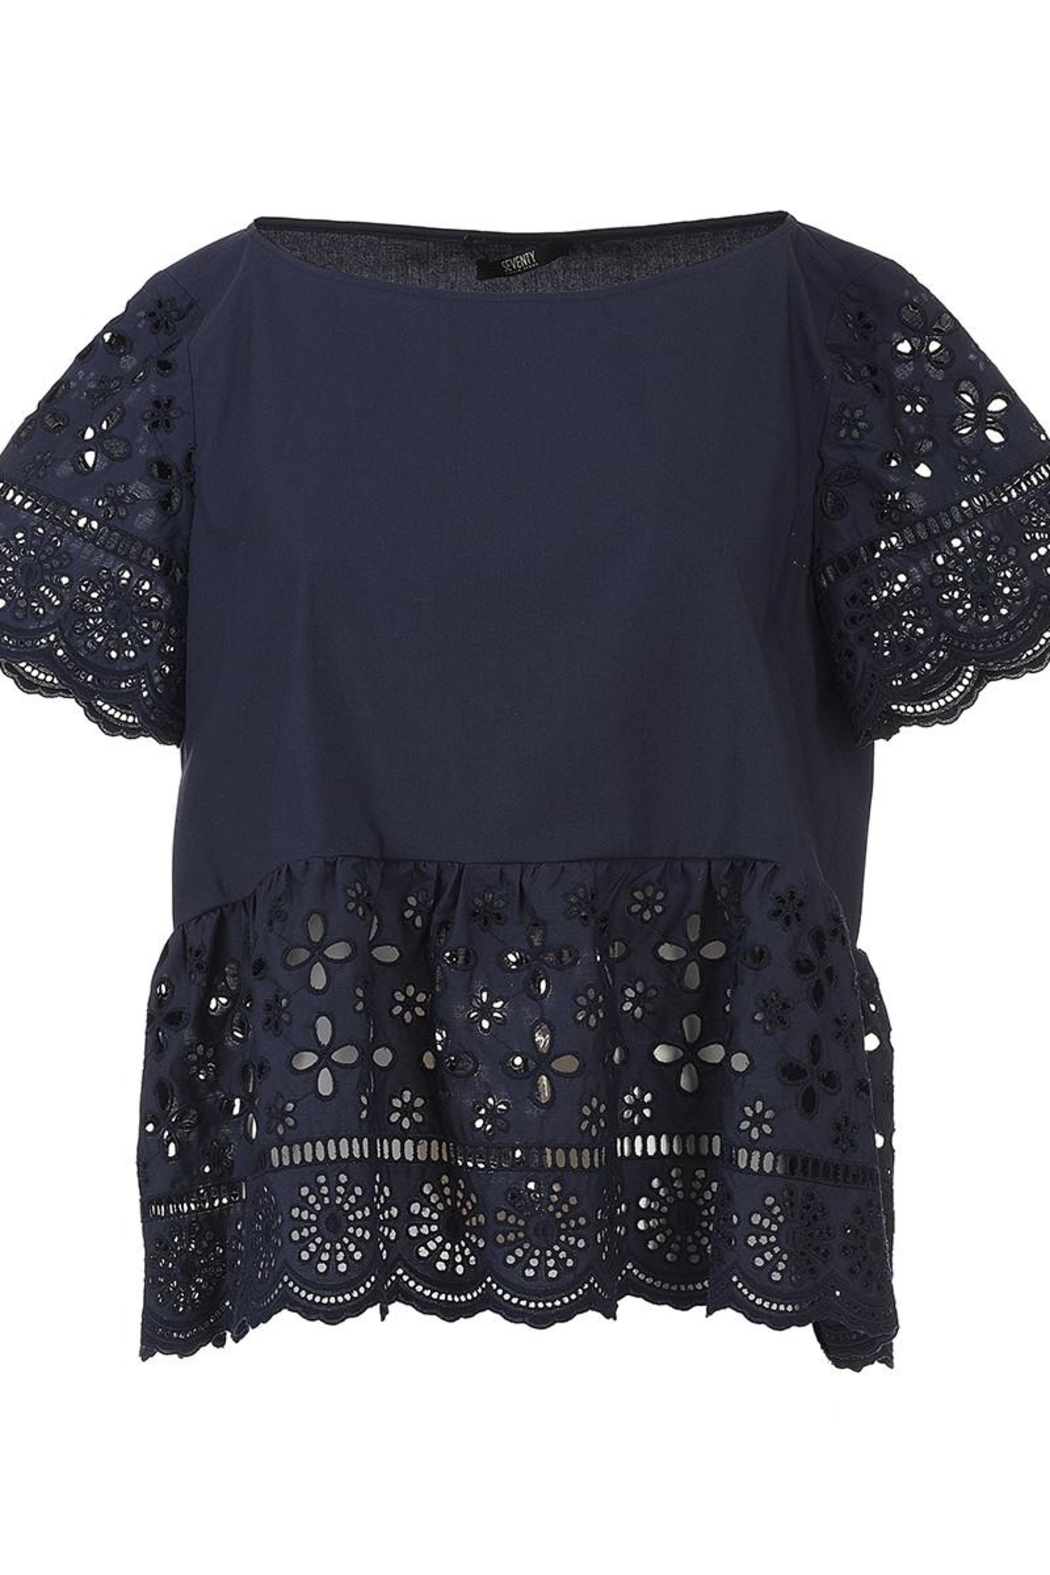 Seventy Cotton Navy Top - Side Cropped Image